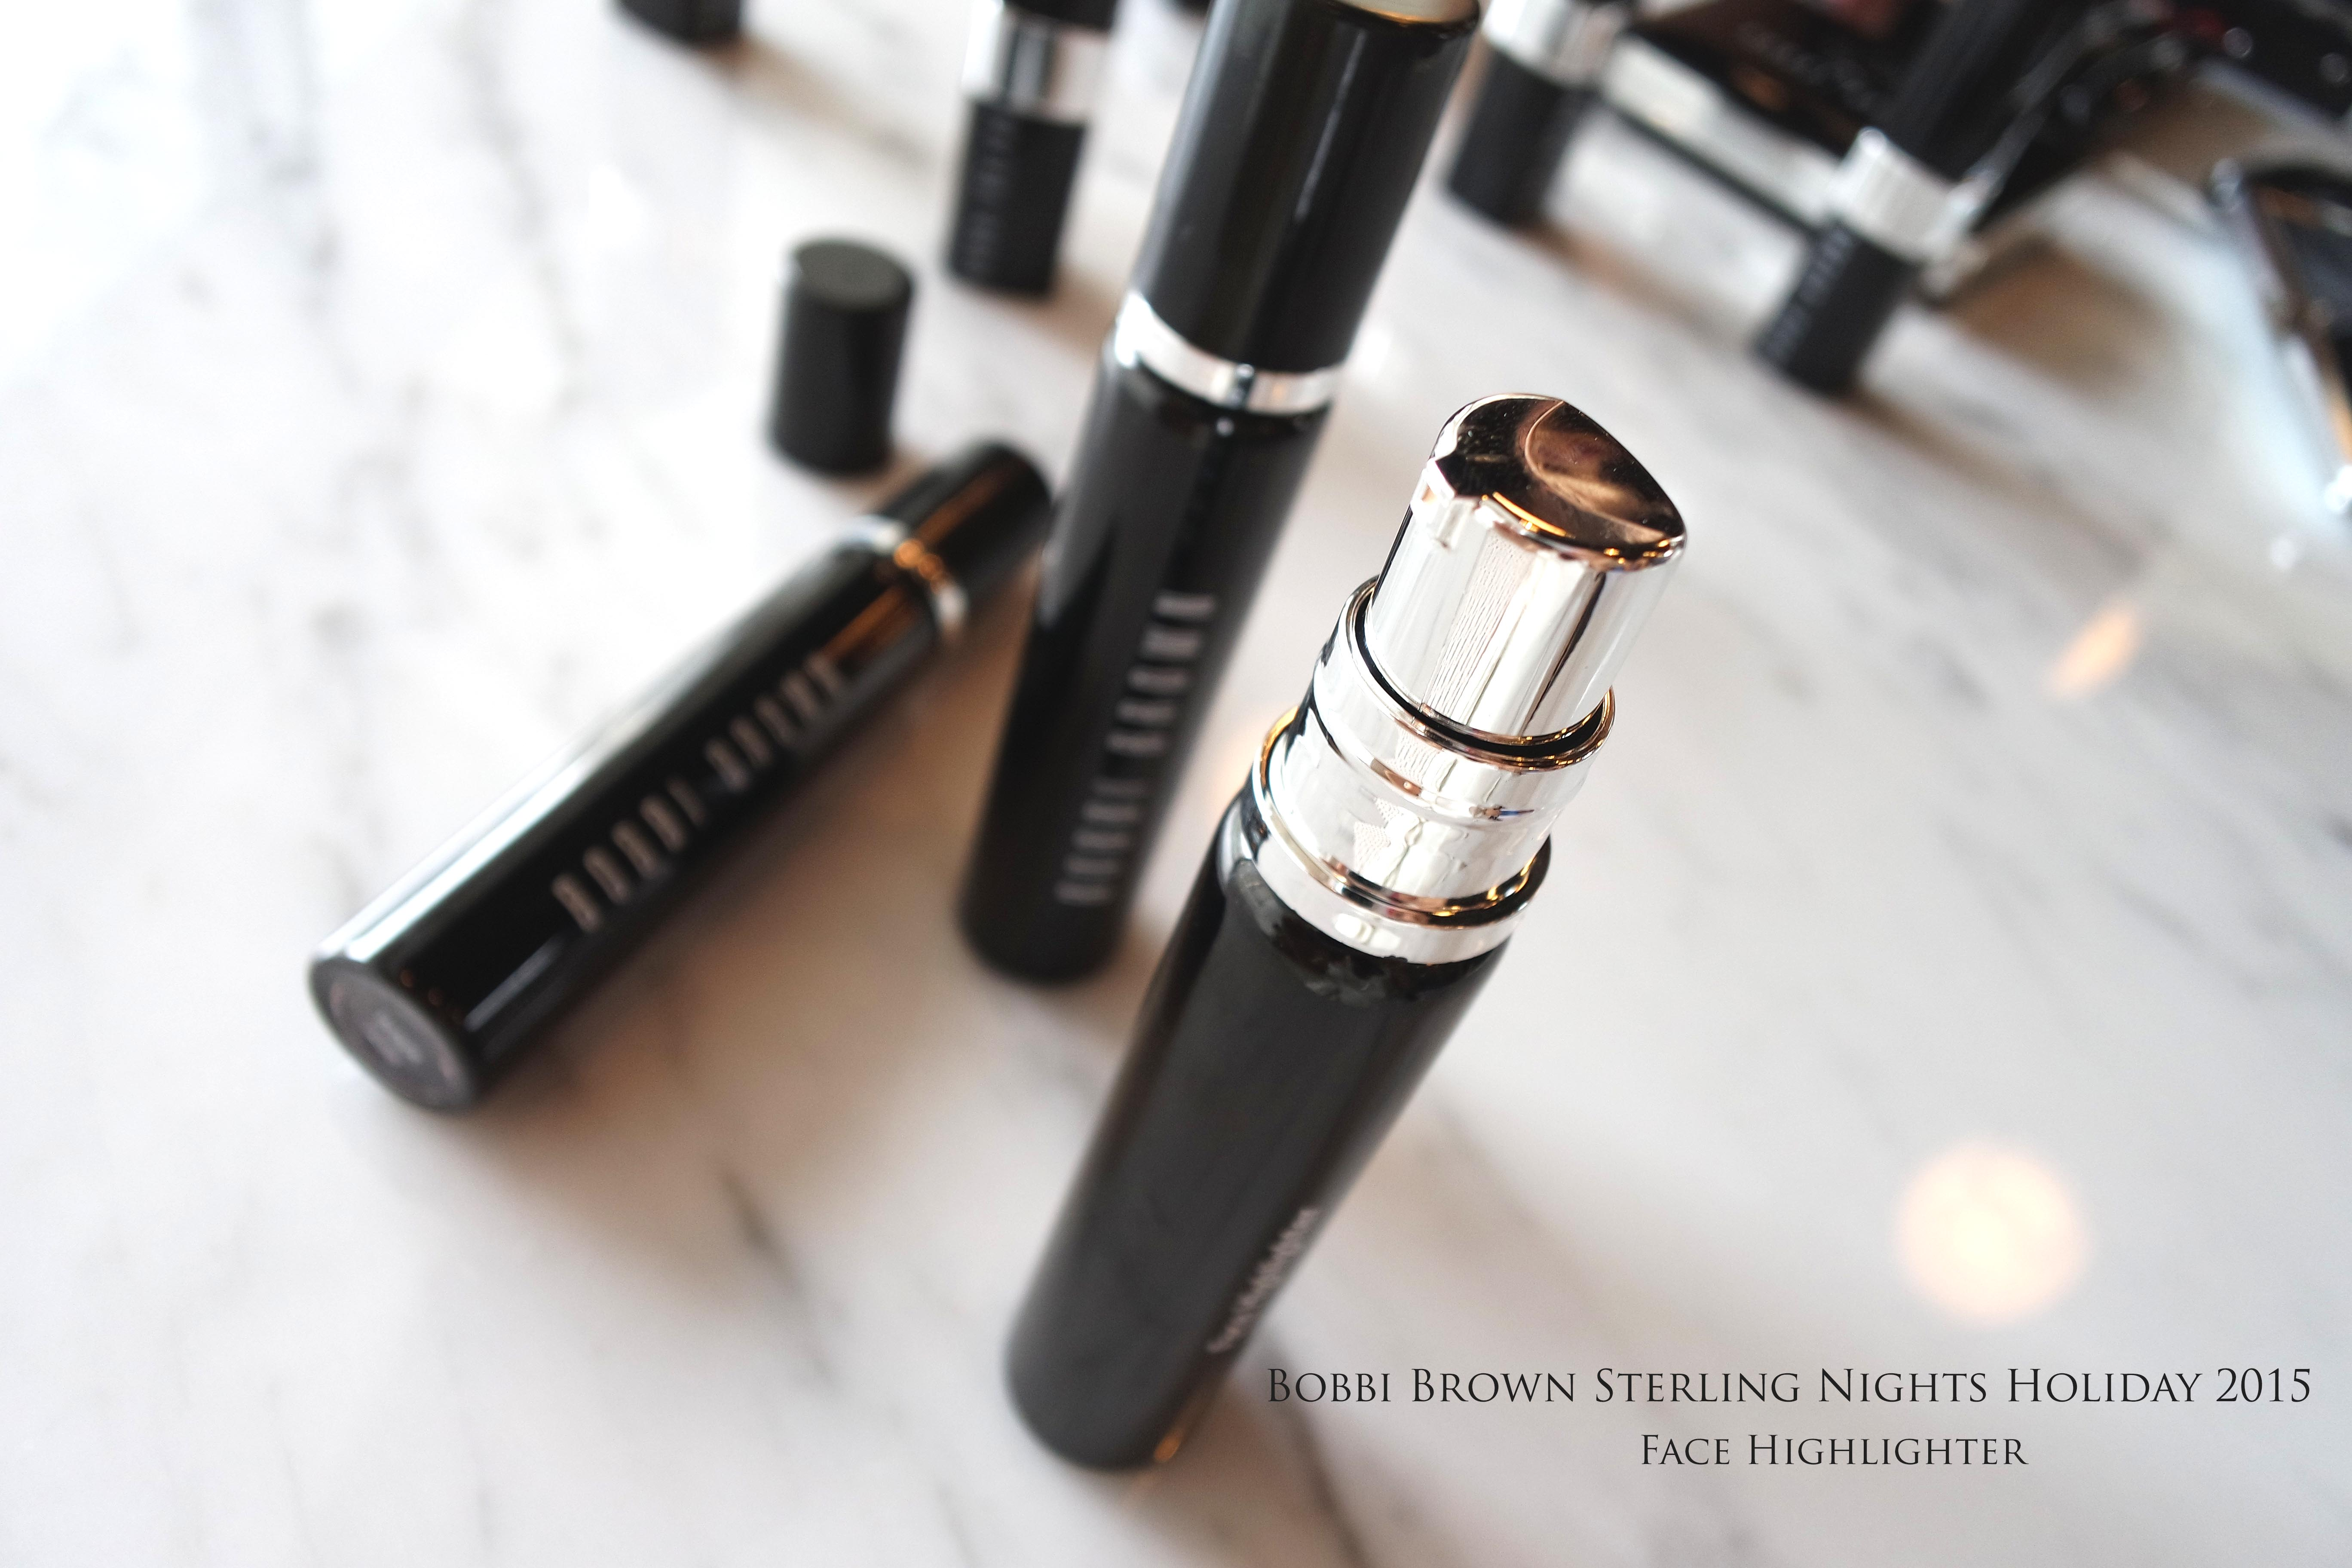 Bobbi Brown Sterling Nights Holiday 2015 Makeup Collection recommendations